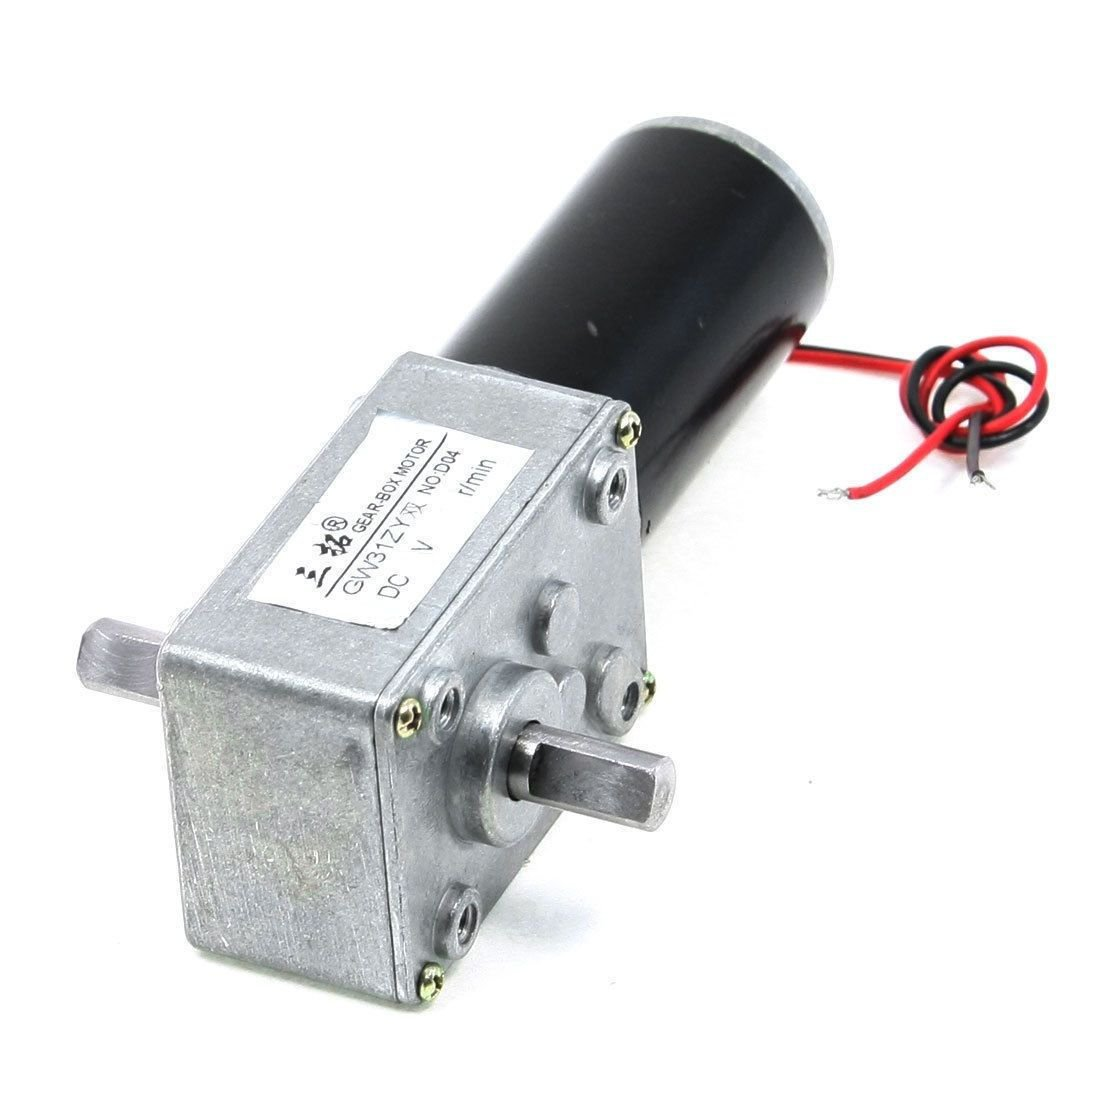 DC 12V 35RPM 1.8A 15KG.CM High Torque 8mm Diameter Dual Shaft Worm Gear Motor